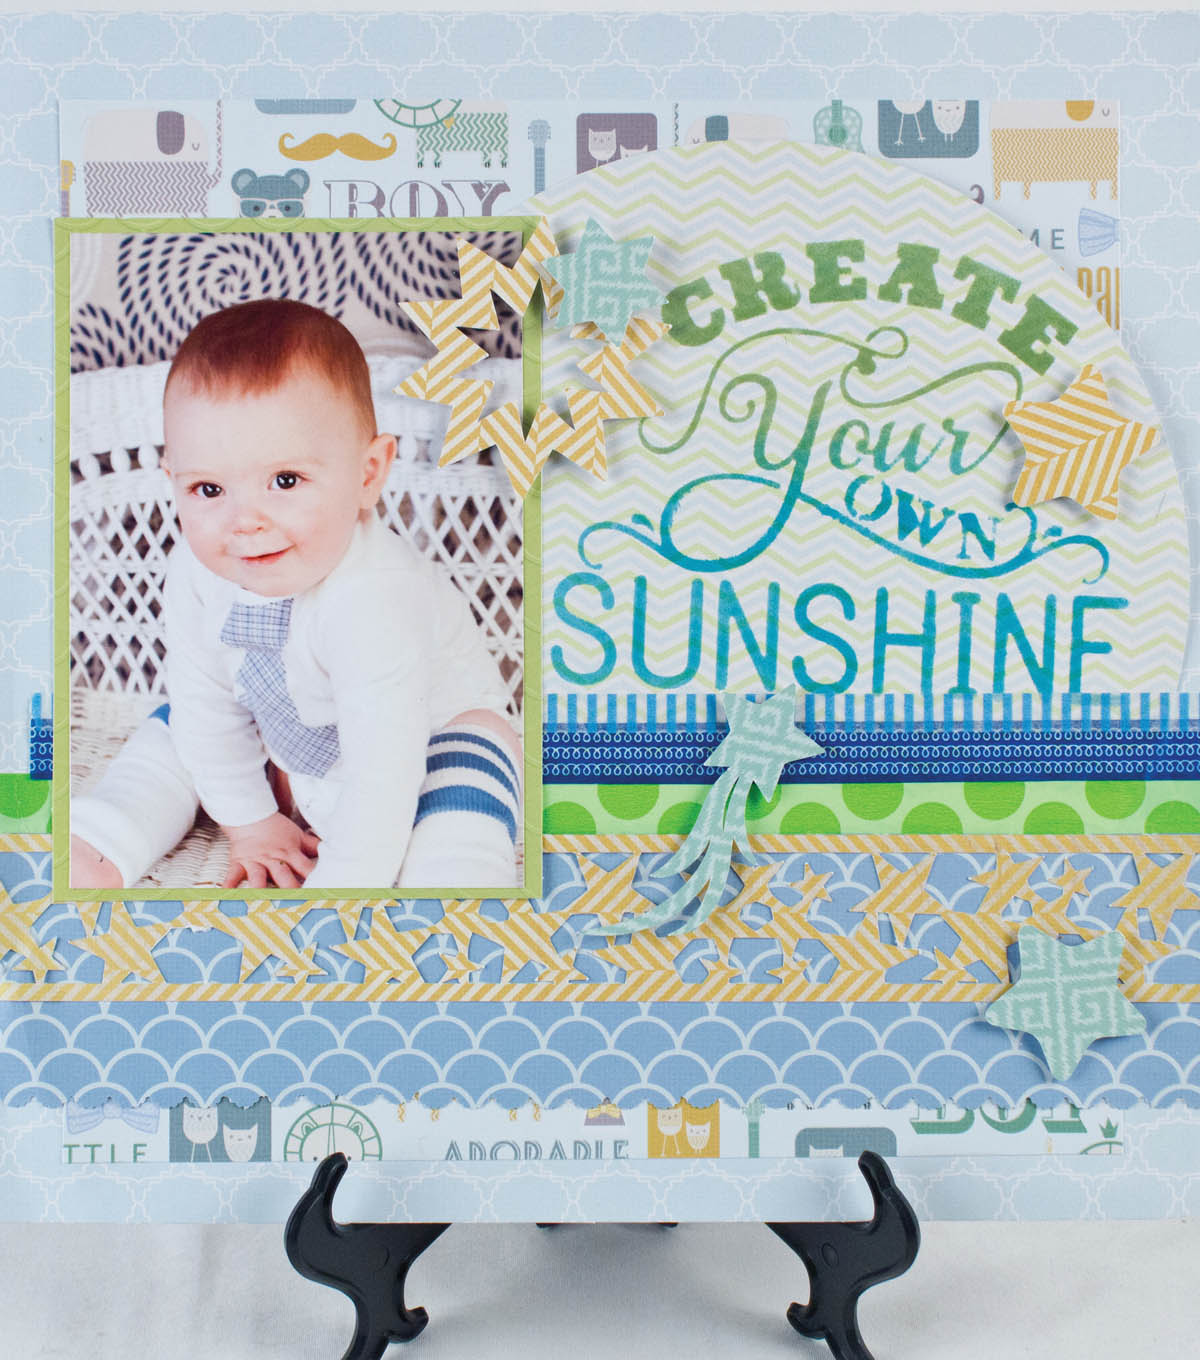 Create Your Own Sunshine Page